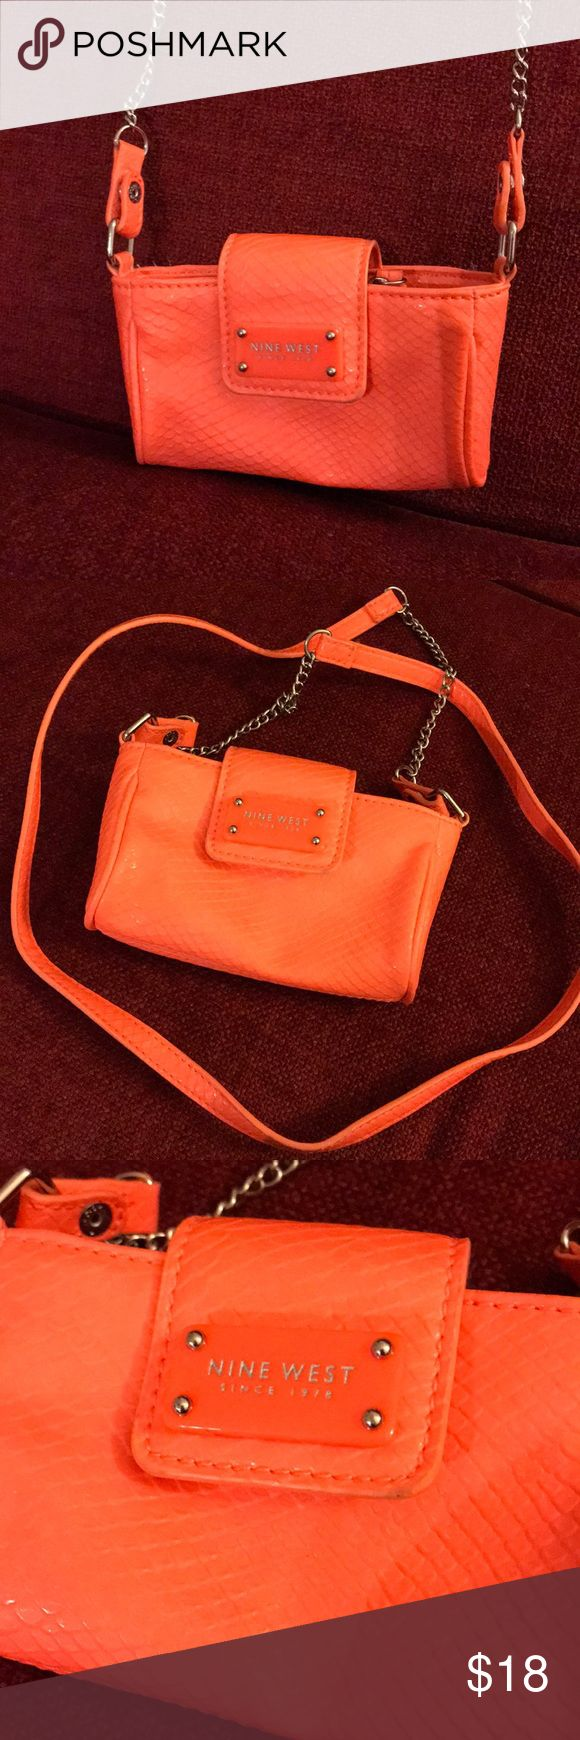 Nine West small neon orange purse crossbody Orange strap with partial chain strap. Neon orange Nine West purse. Inside has zipper divider. Small purse. Crossbody. Closes with button clasp. ID holder on back side. Nine West Bags Crossbody Bags